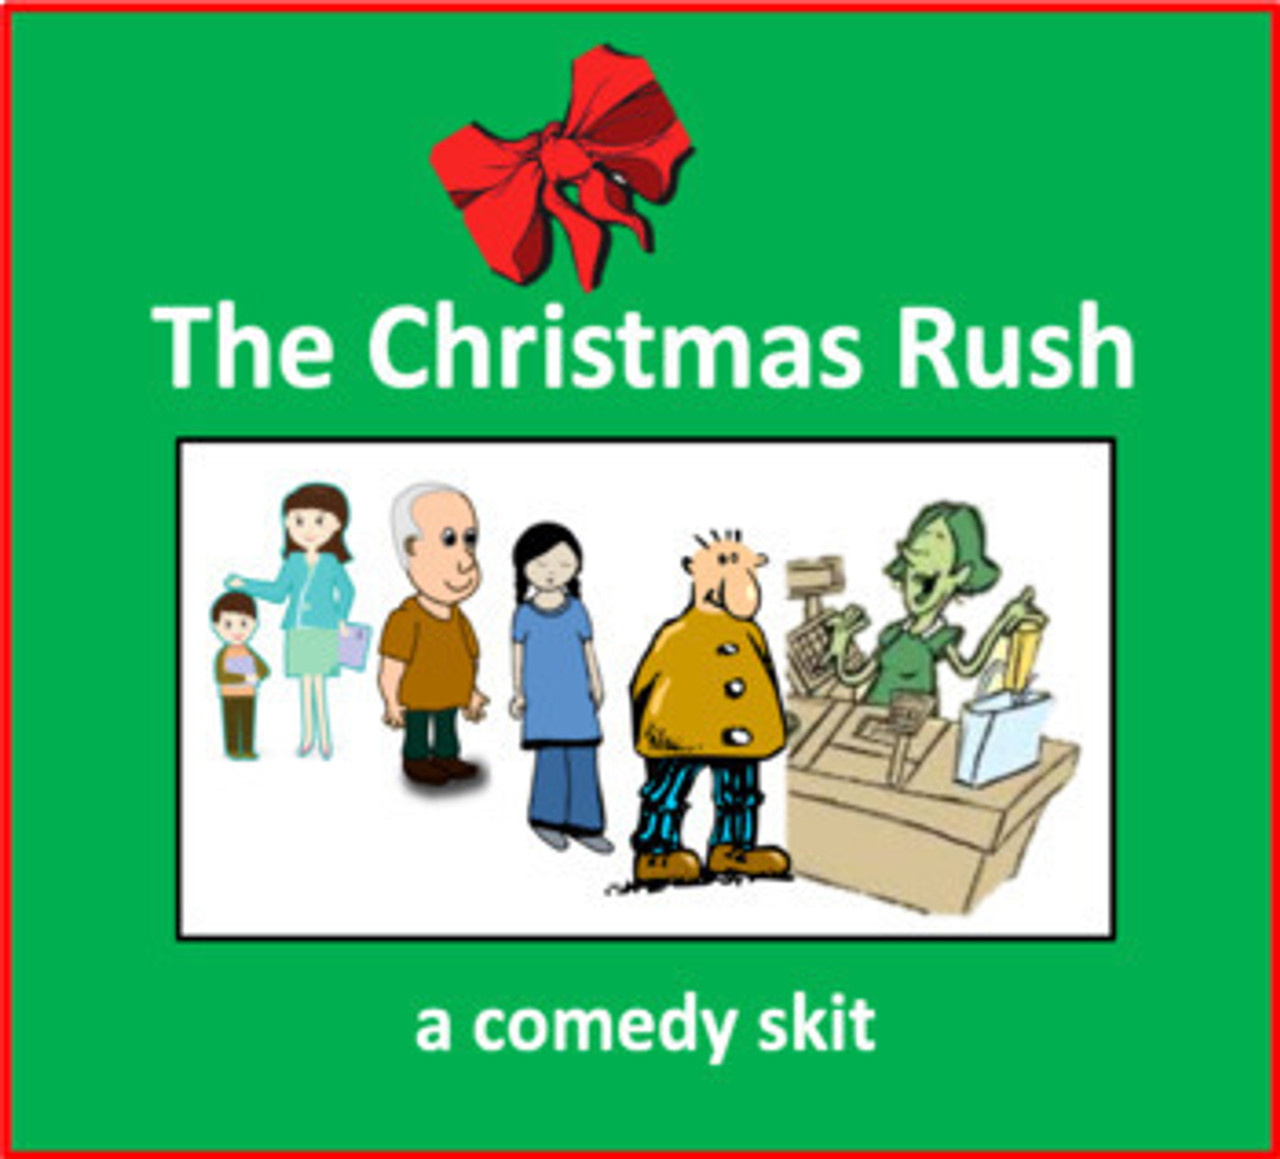 The Christmas Rush